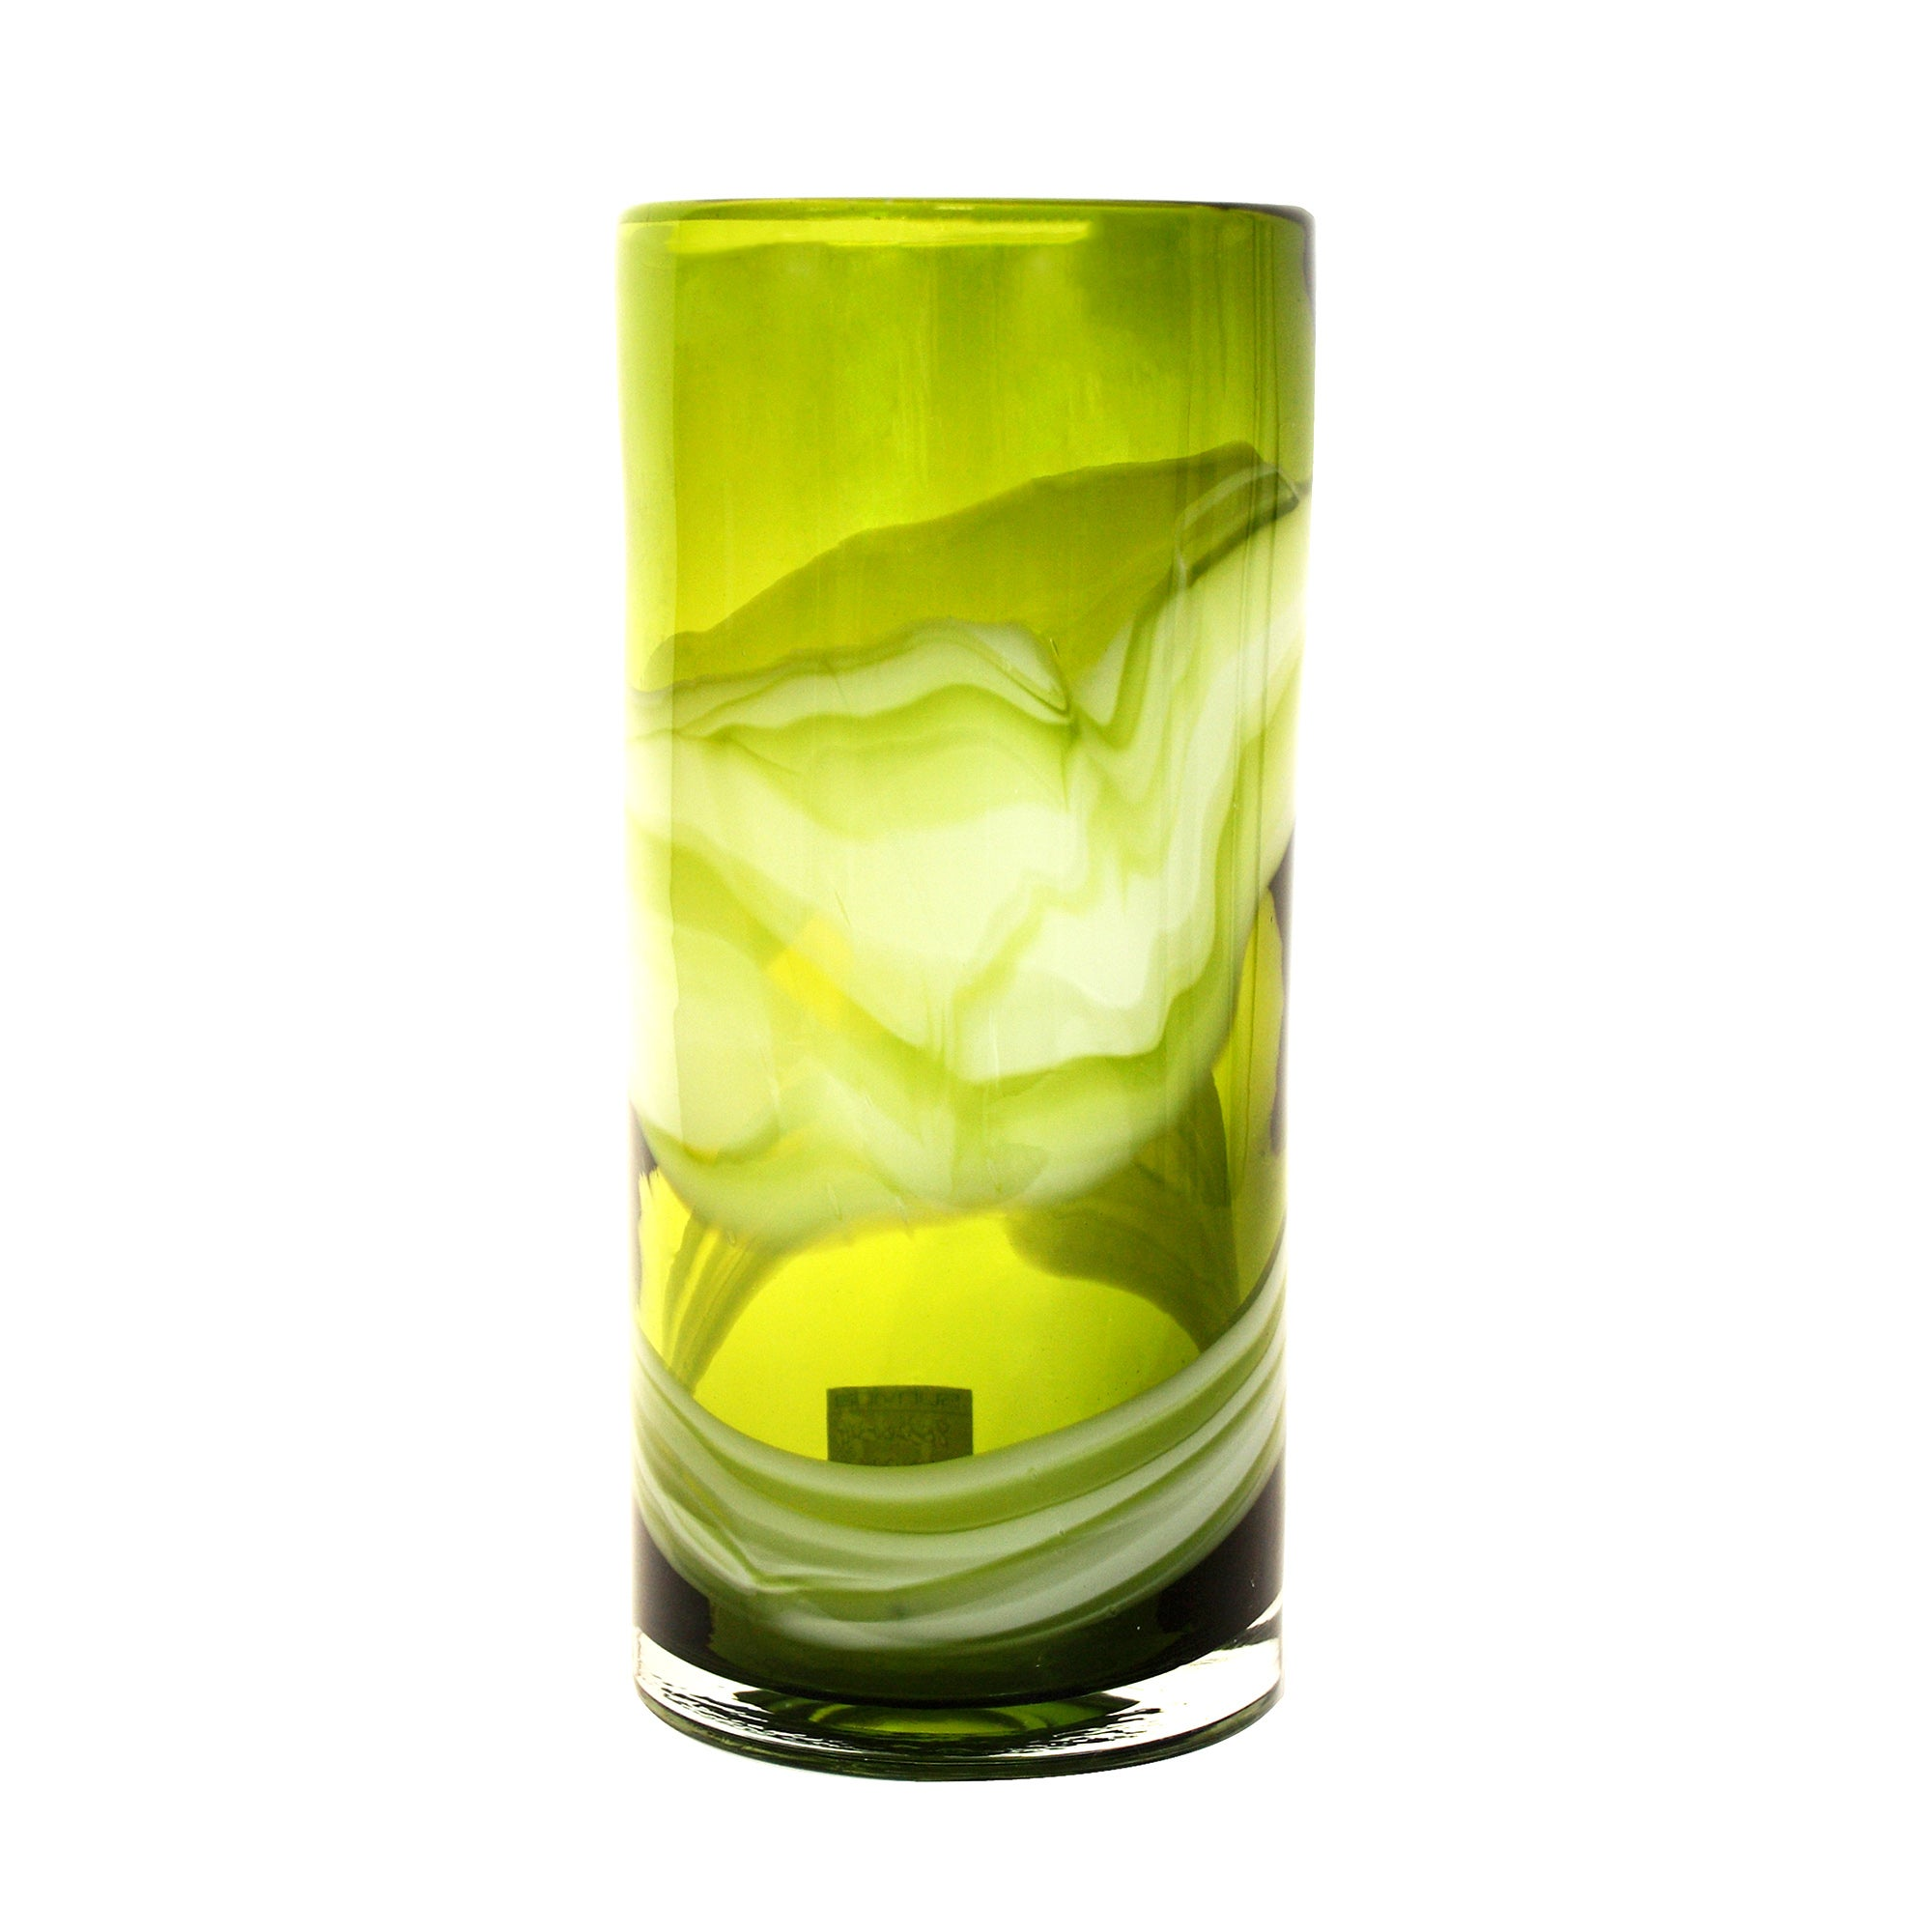 Key Lime Collection Glass Swirl Vase